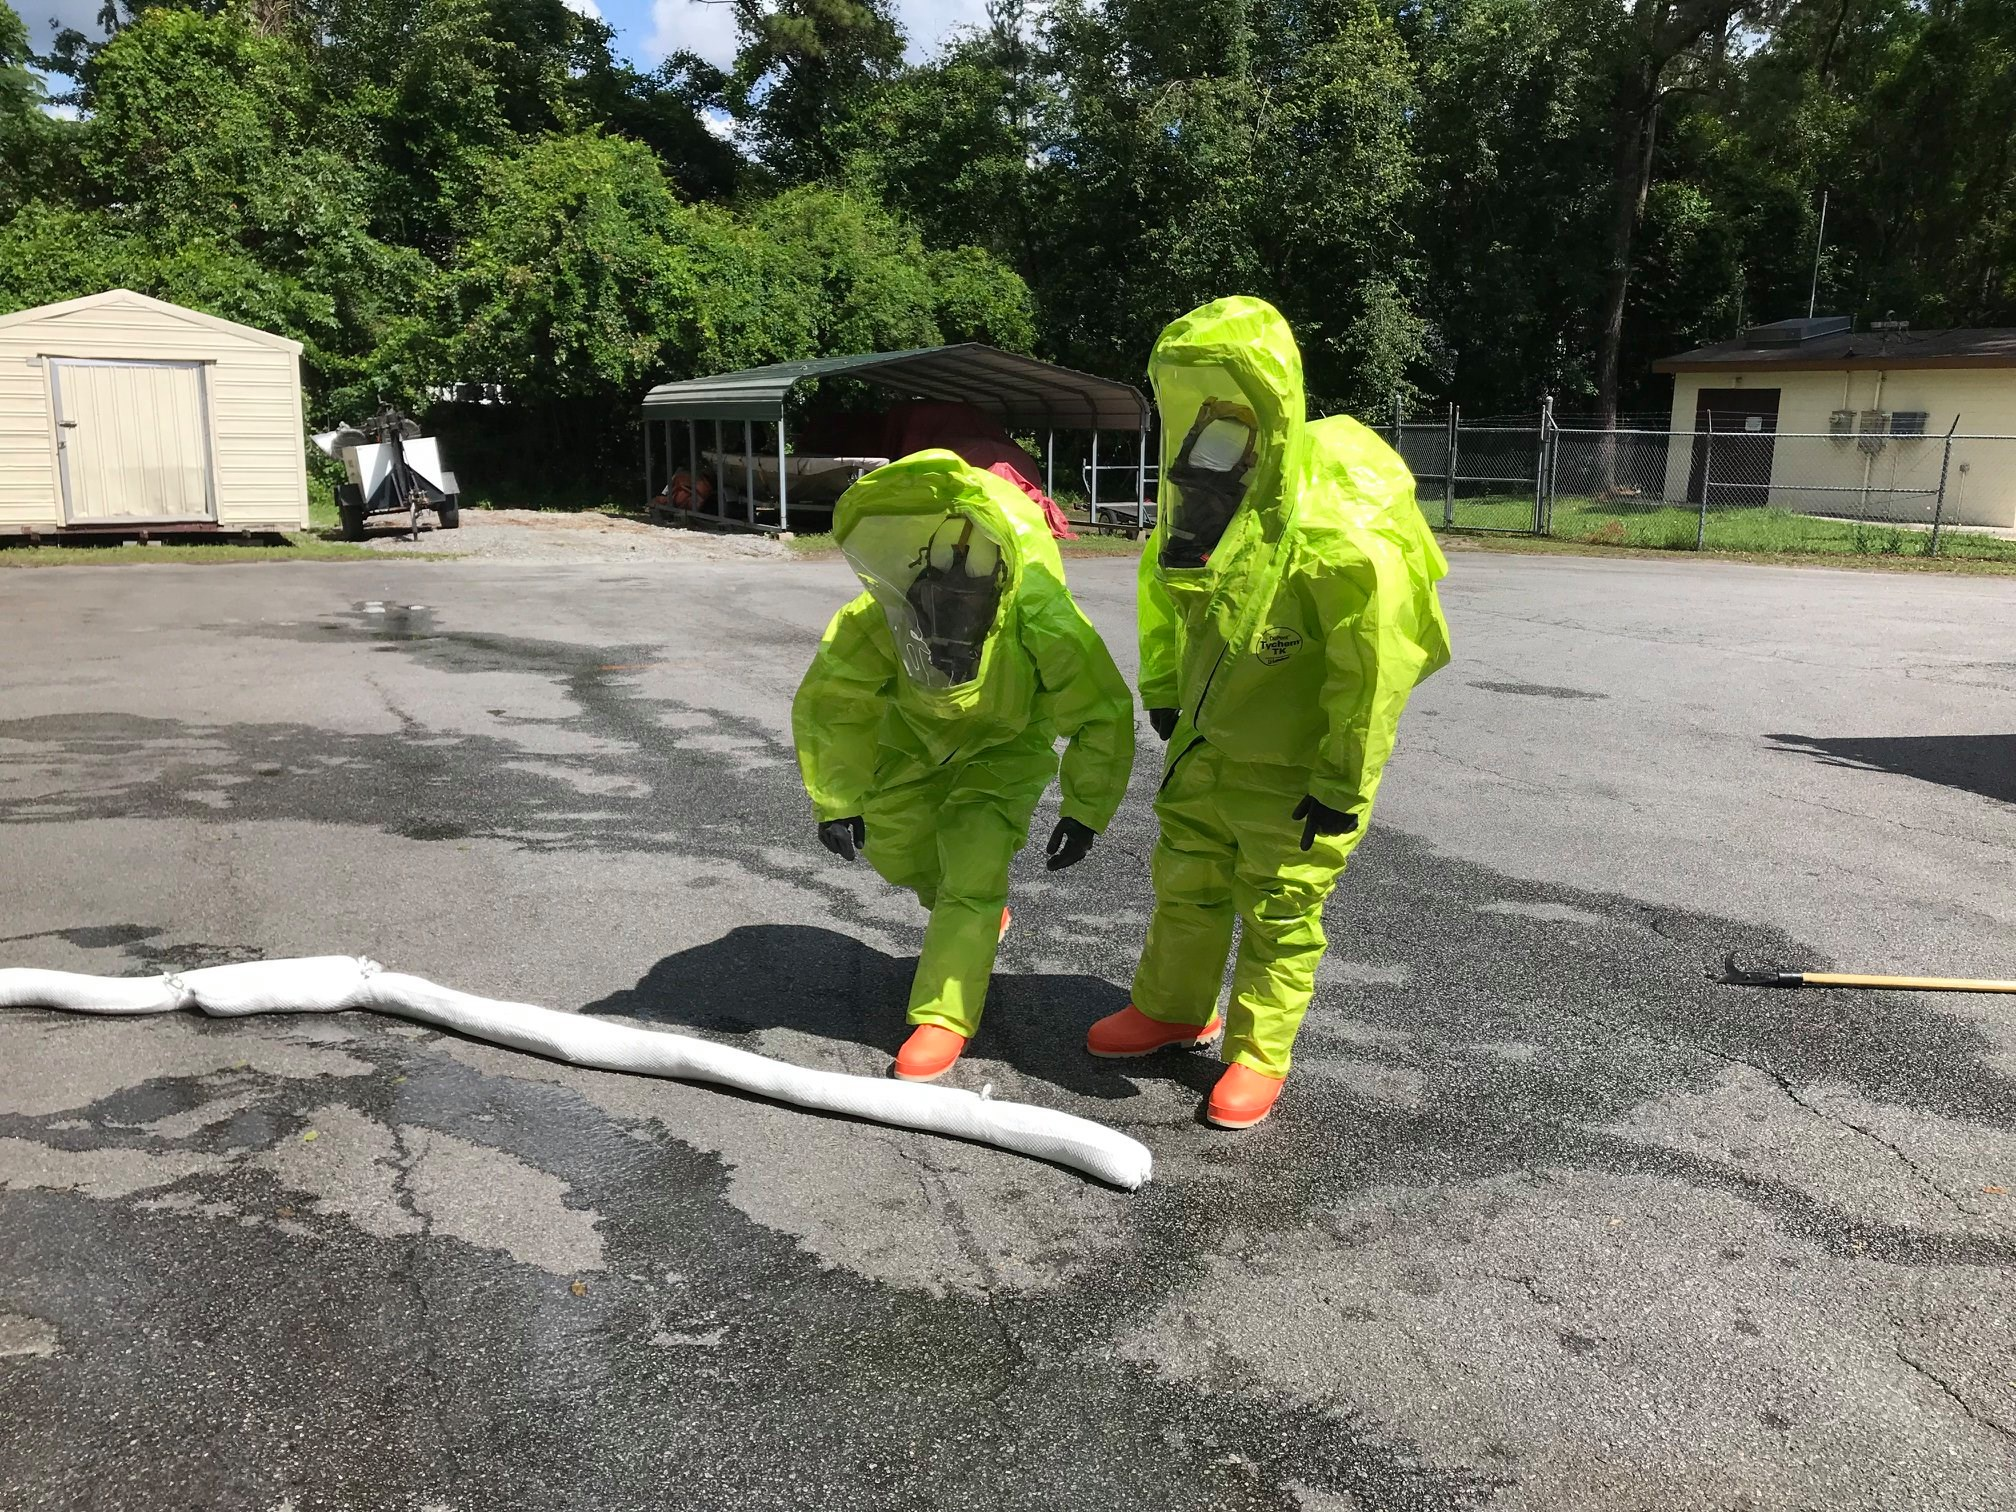 Two firefighters in hazmat suits laying out a white pipe